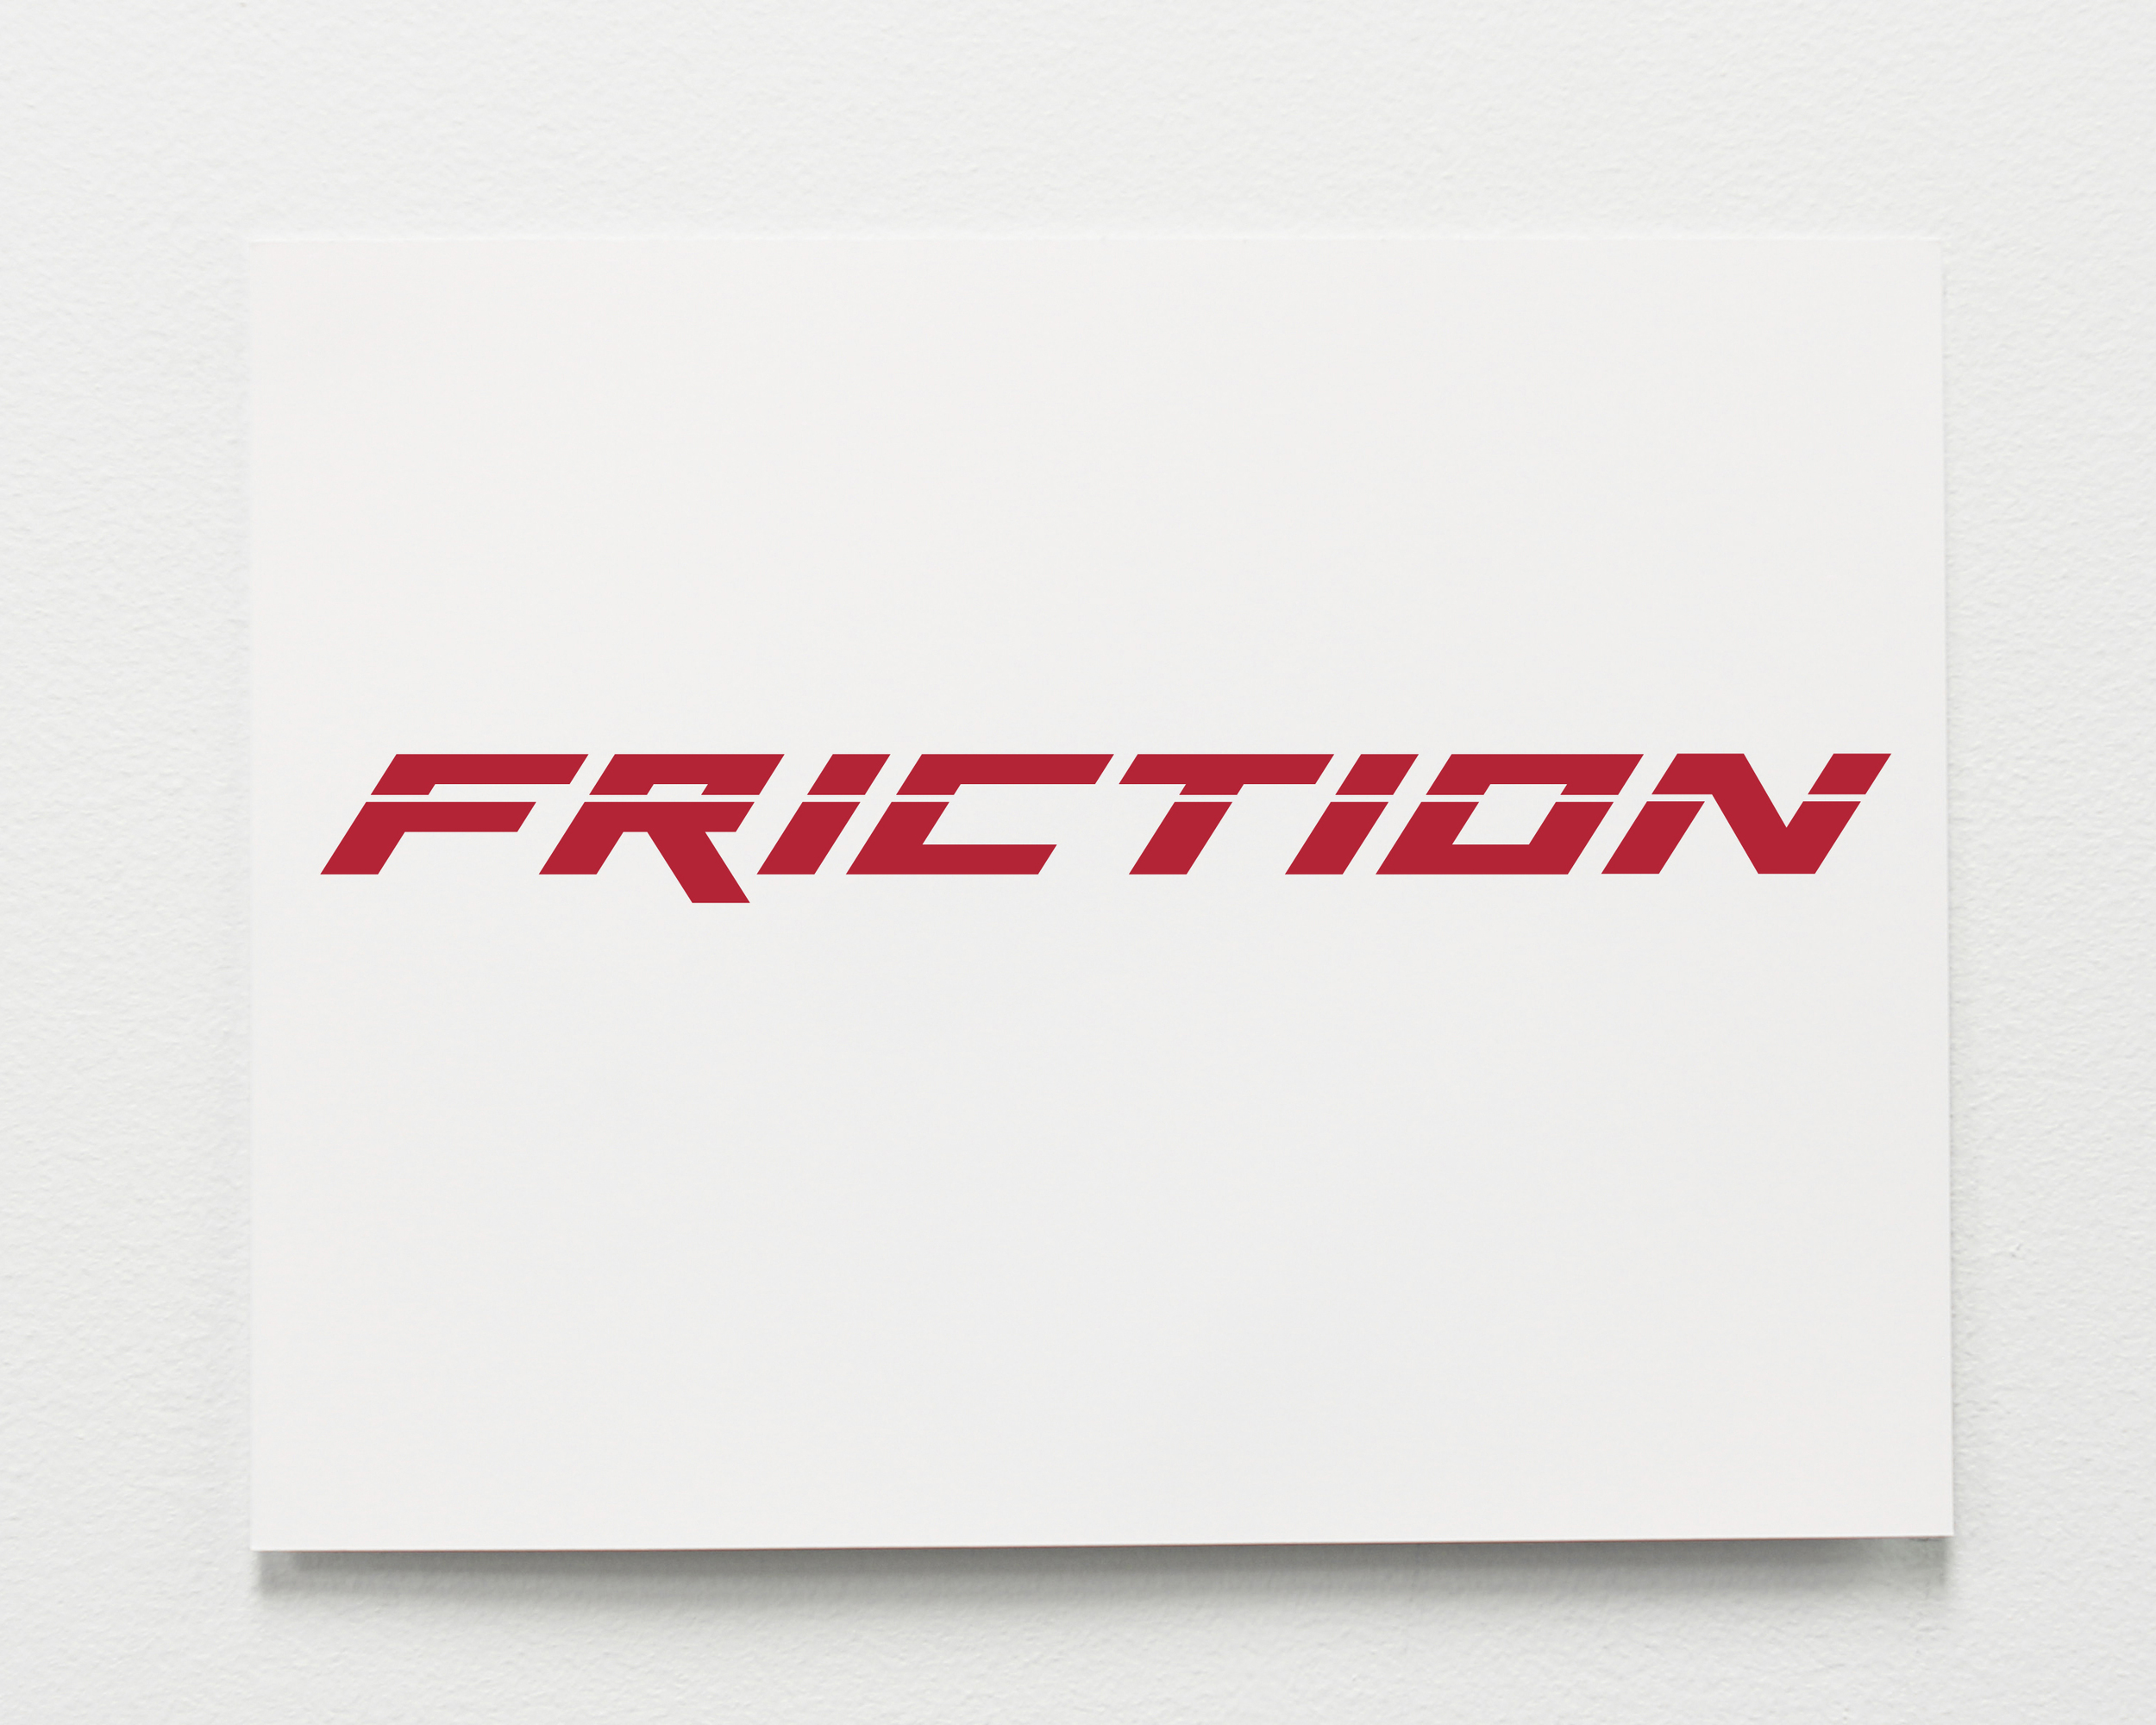 Friction (Red Hot)